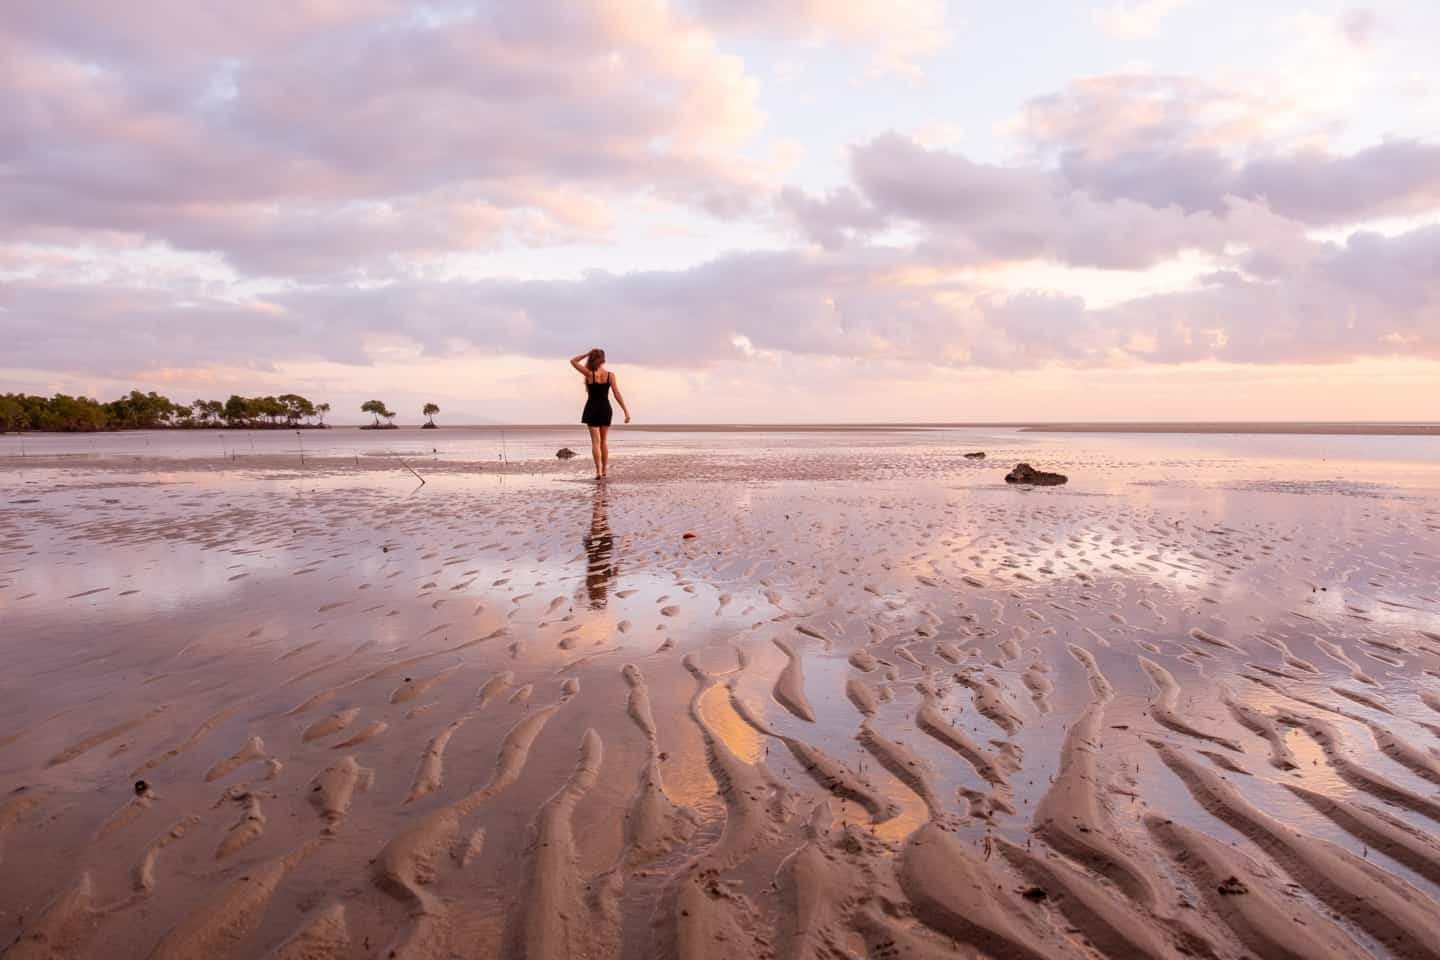 An image of a girl walking along the sand at Yule Point, Port Douglas at sunrise with the sunrise reflecting on the wet rippled sand